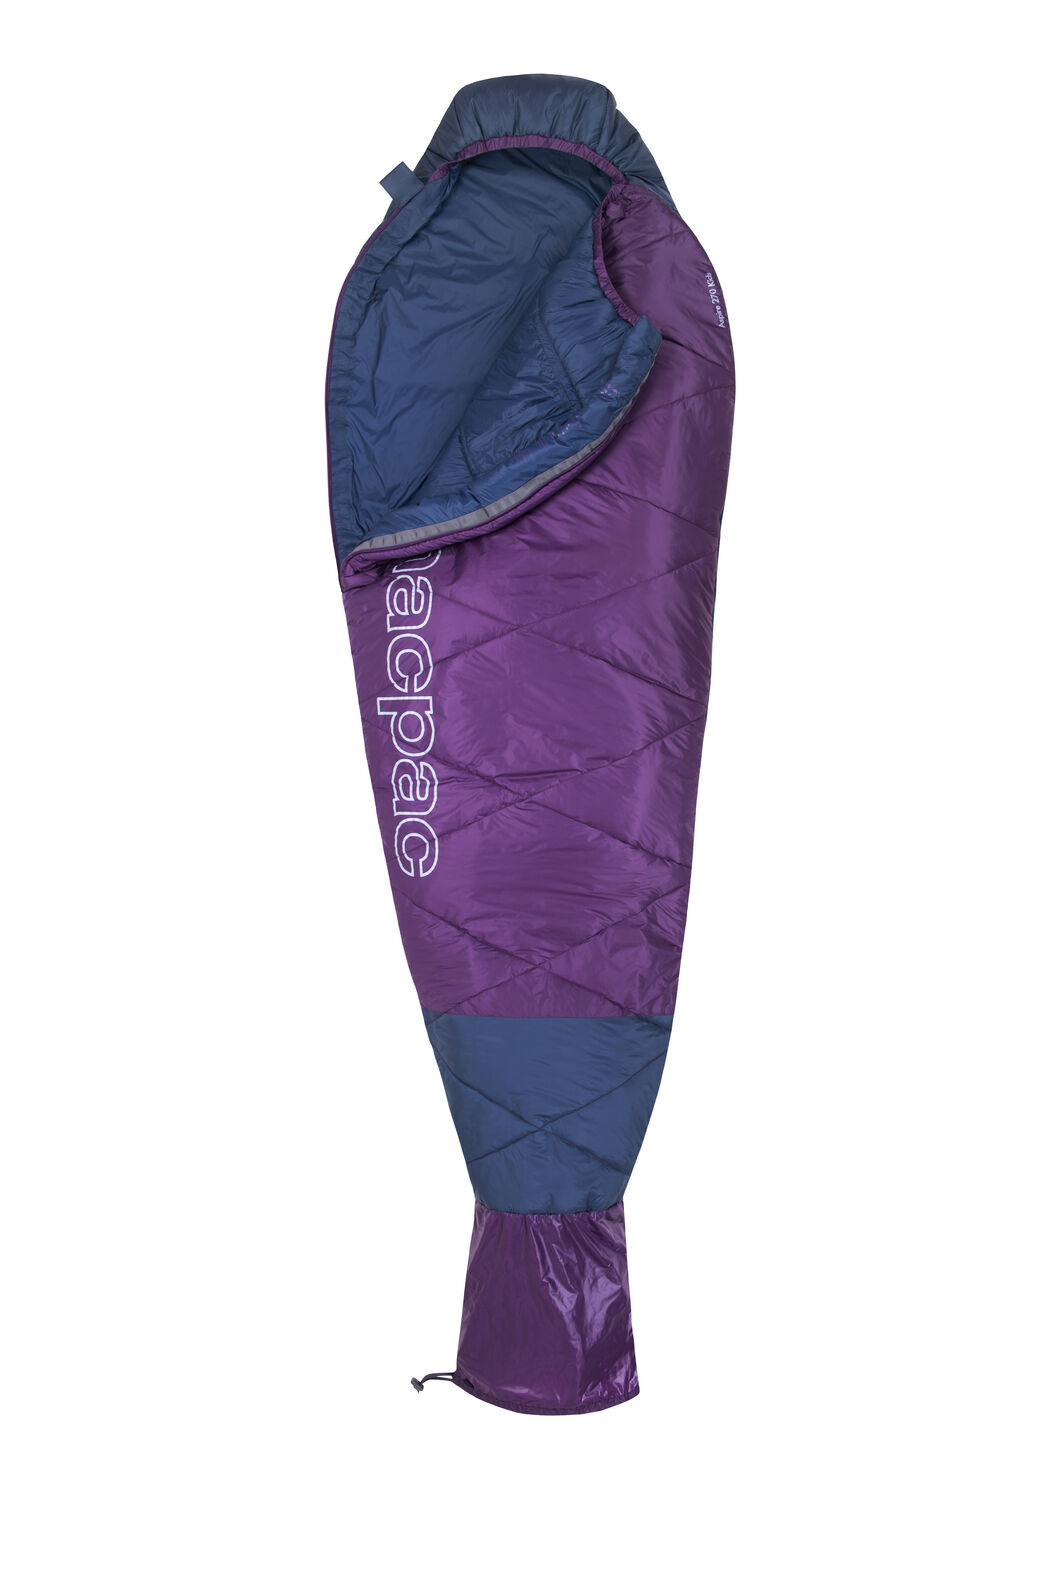 Macpac Aspire 270 Sleeping Bag — Kids', Blue Wing Teal/Wineberry, hi-res